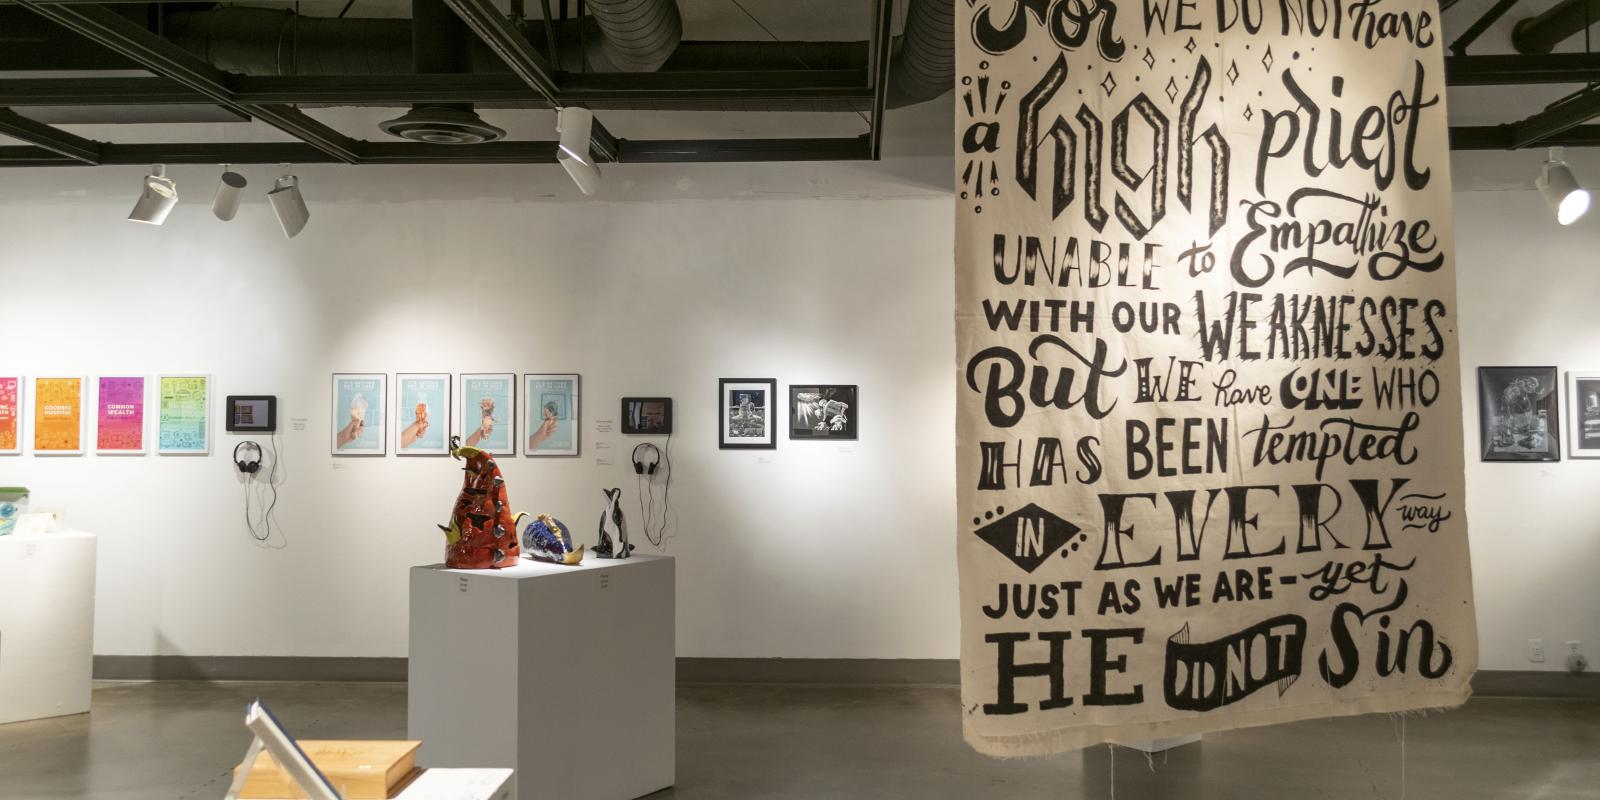 Back of gallery, Exhibition: PolyKroma 2018, May 19 - Jun 10, 2018, Co-curated by Michele Cairella Fillmore & Sooyun Im, W. Keith & Janet Kellogg Art Gallery, Cal Poly Pomona.